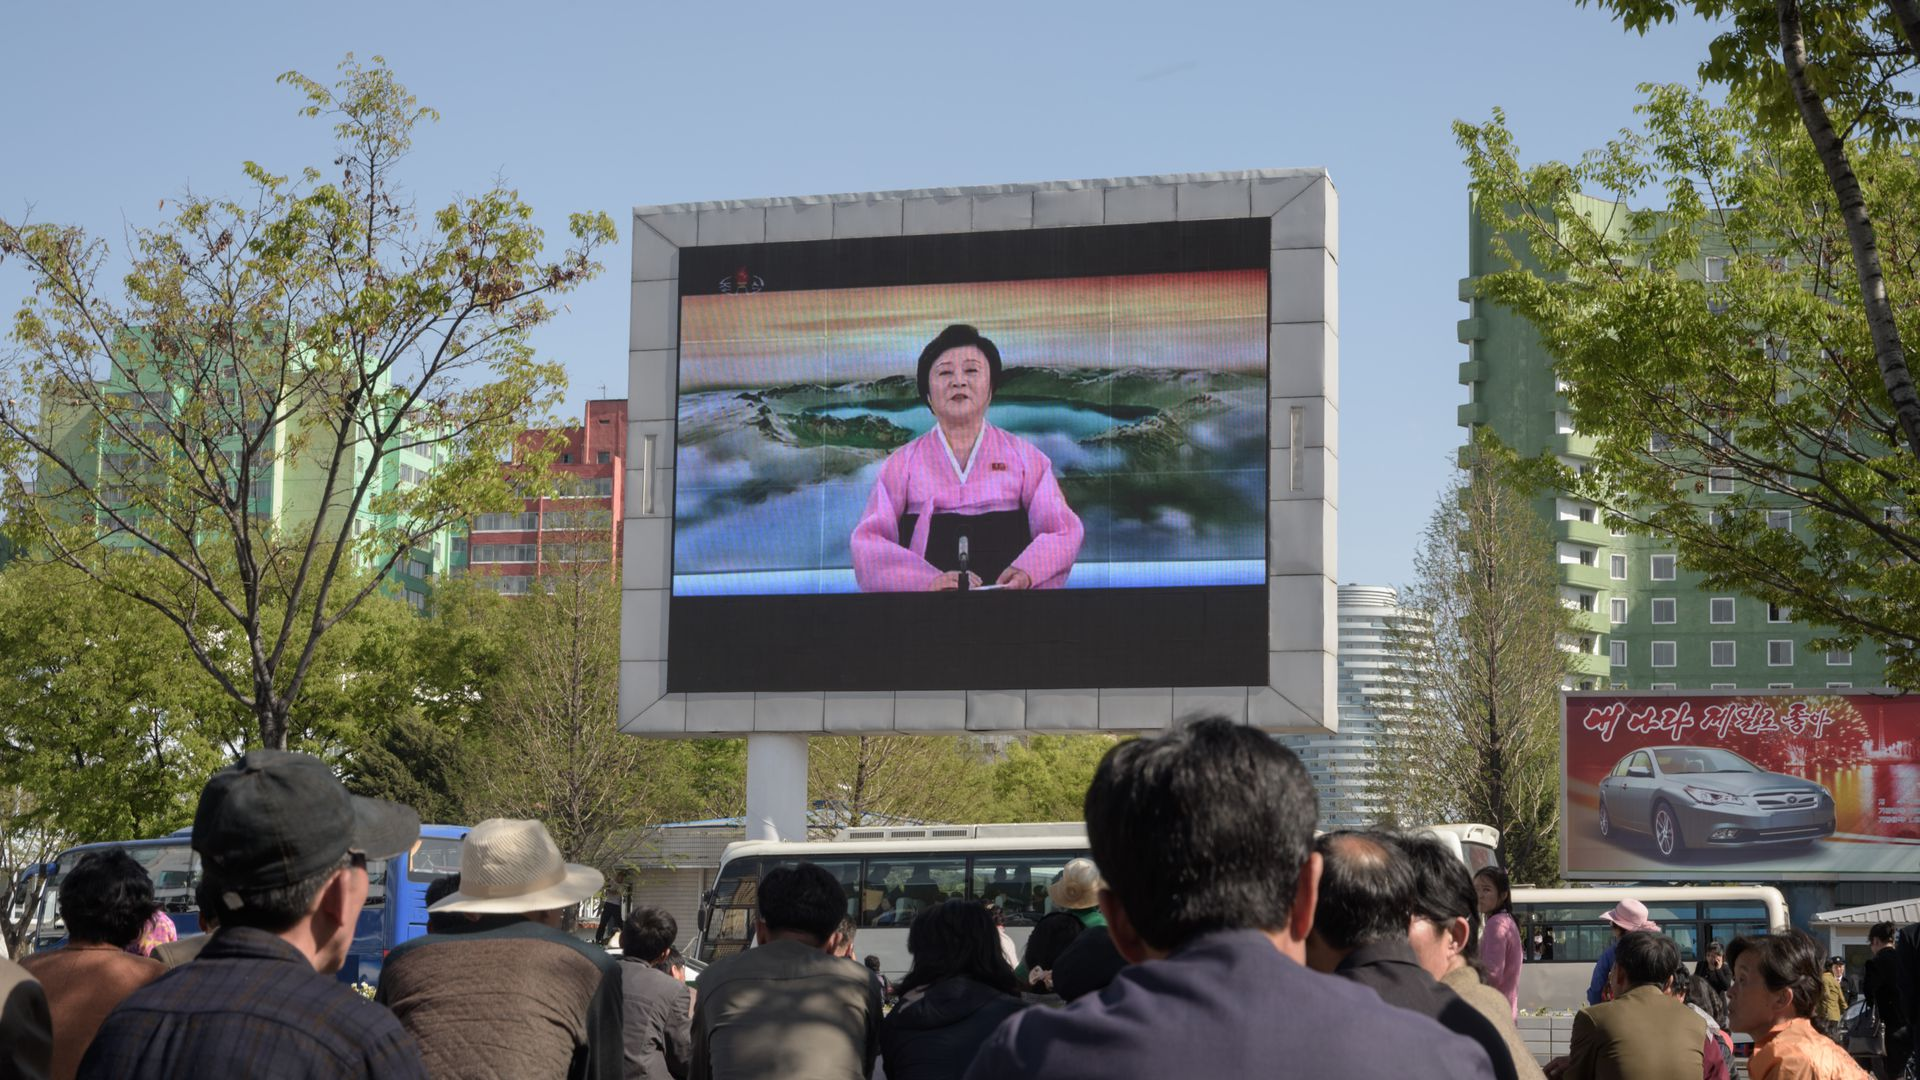 People watch a public television screen showing coverage of the 'Third Plenary Meeting' of the 7th central committee of the ruling Workers' Party, in Pyongyang